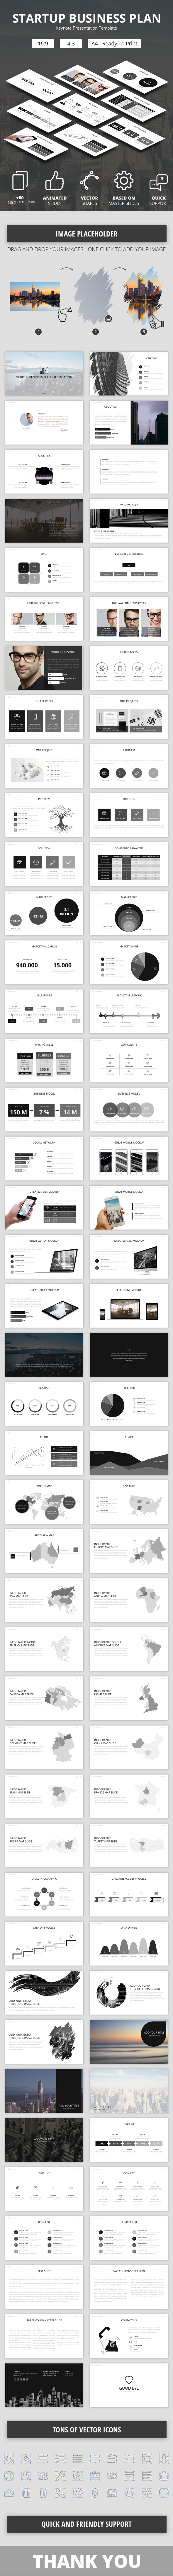 Startup Business Plan Keynote Presentation Template - Business Keynote Templates